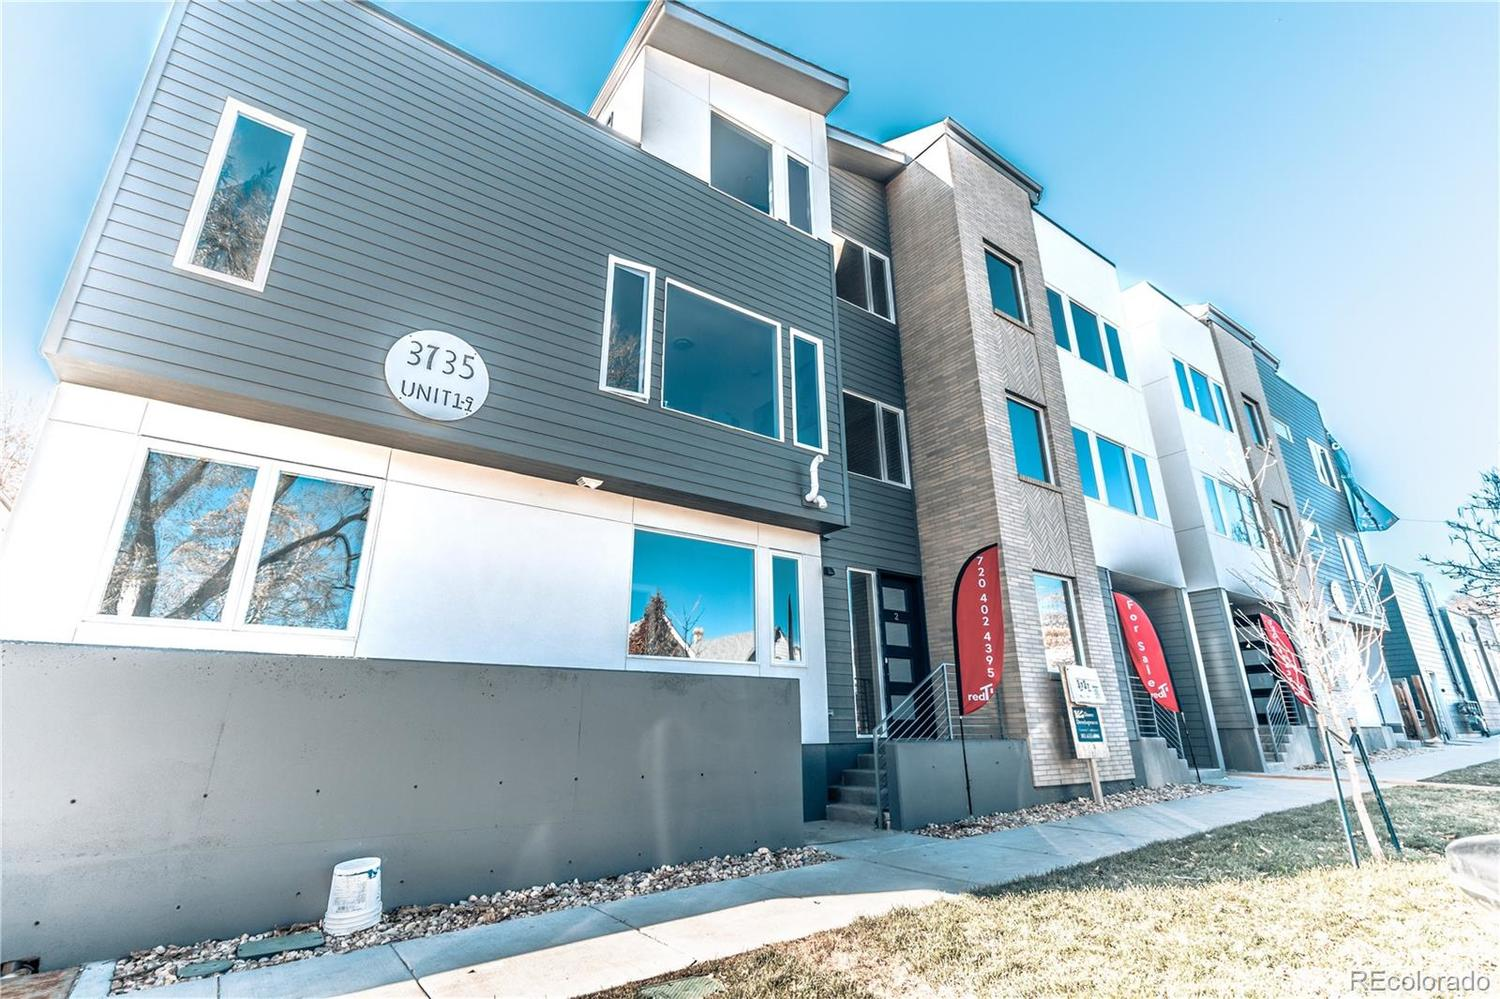 3735 Kalamath Street, Unit 3 Denver, CO 80211